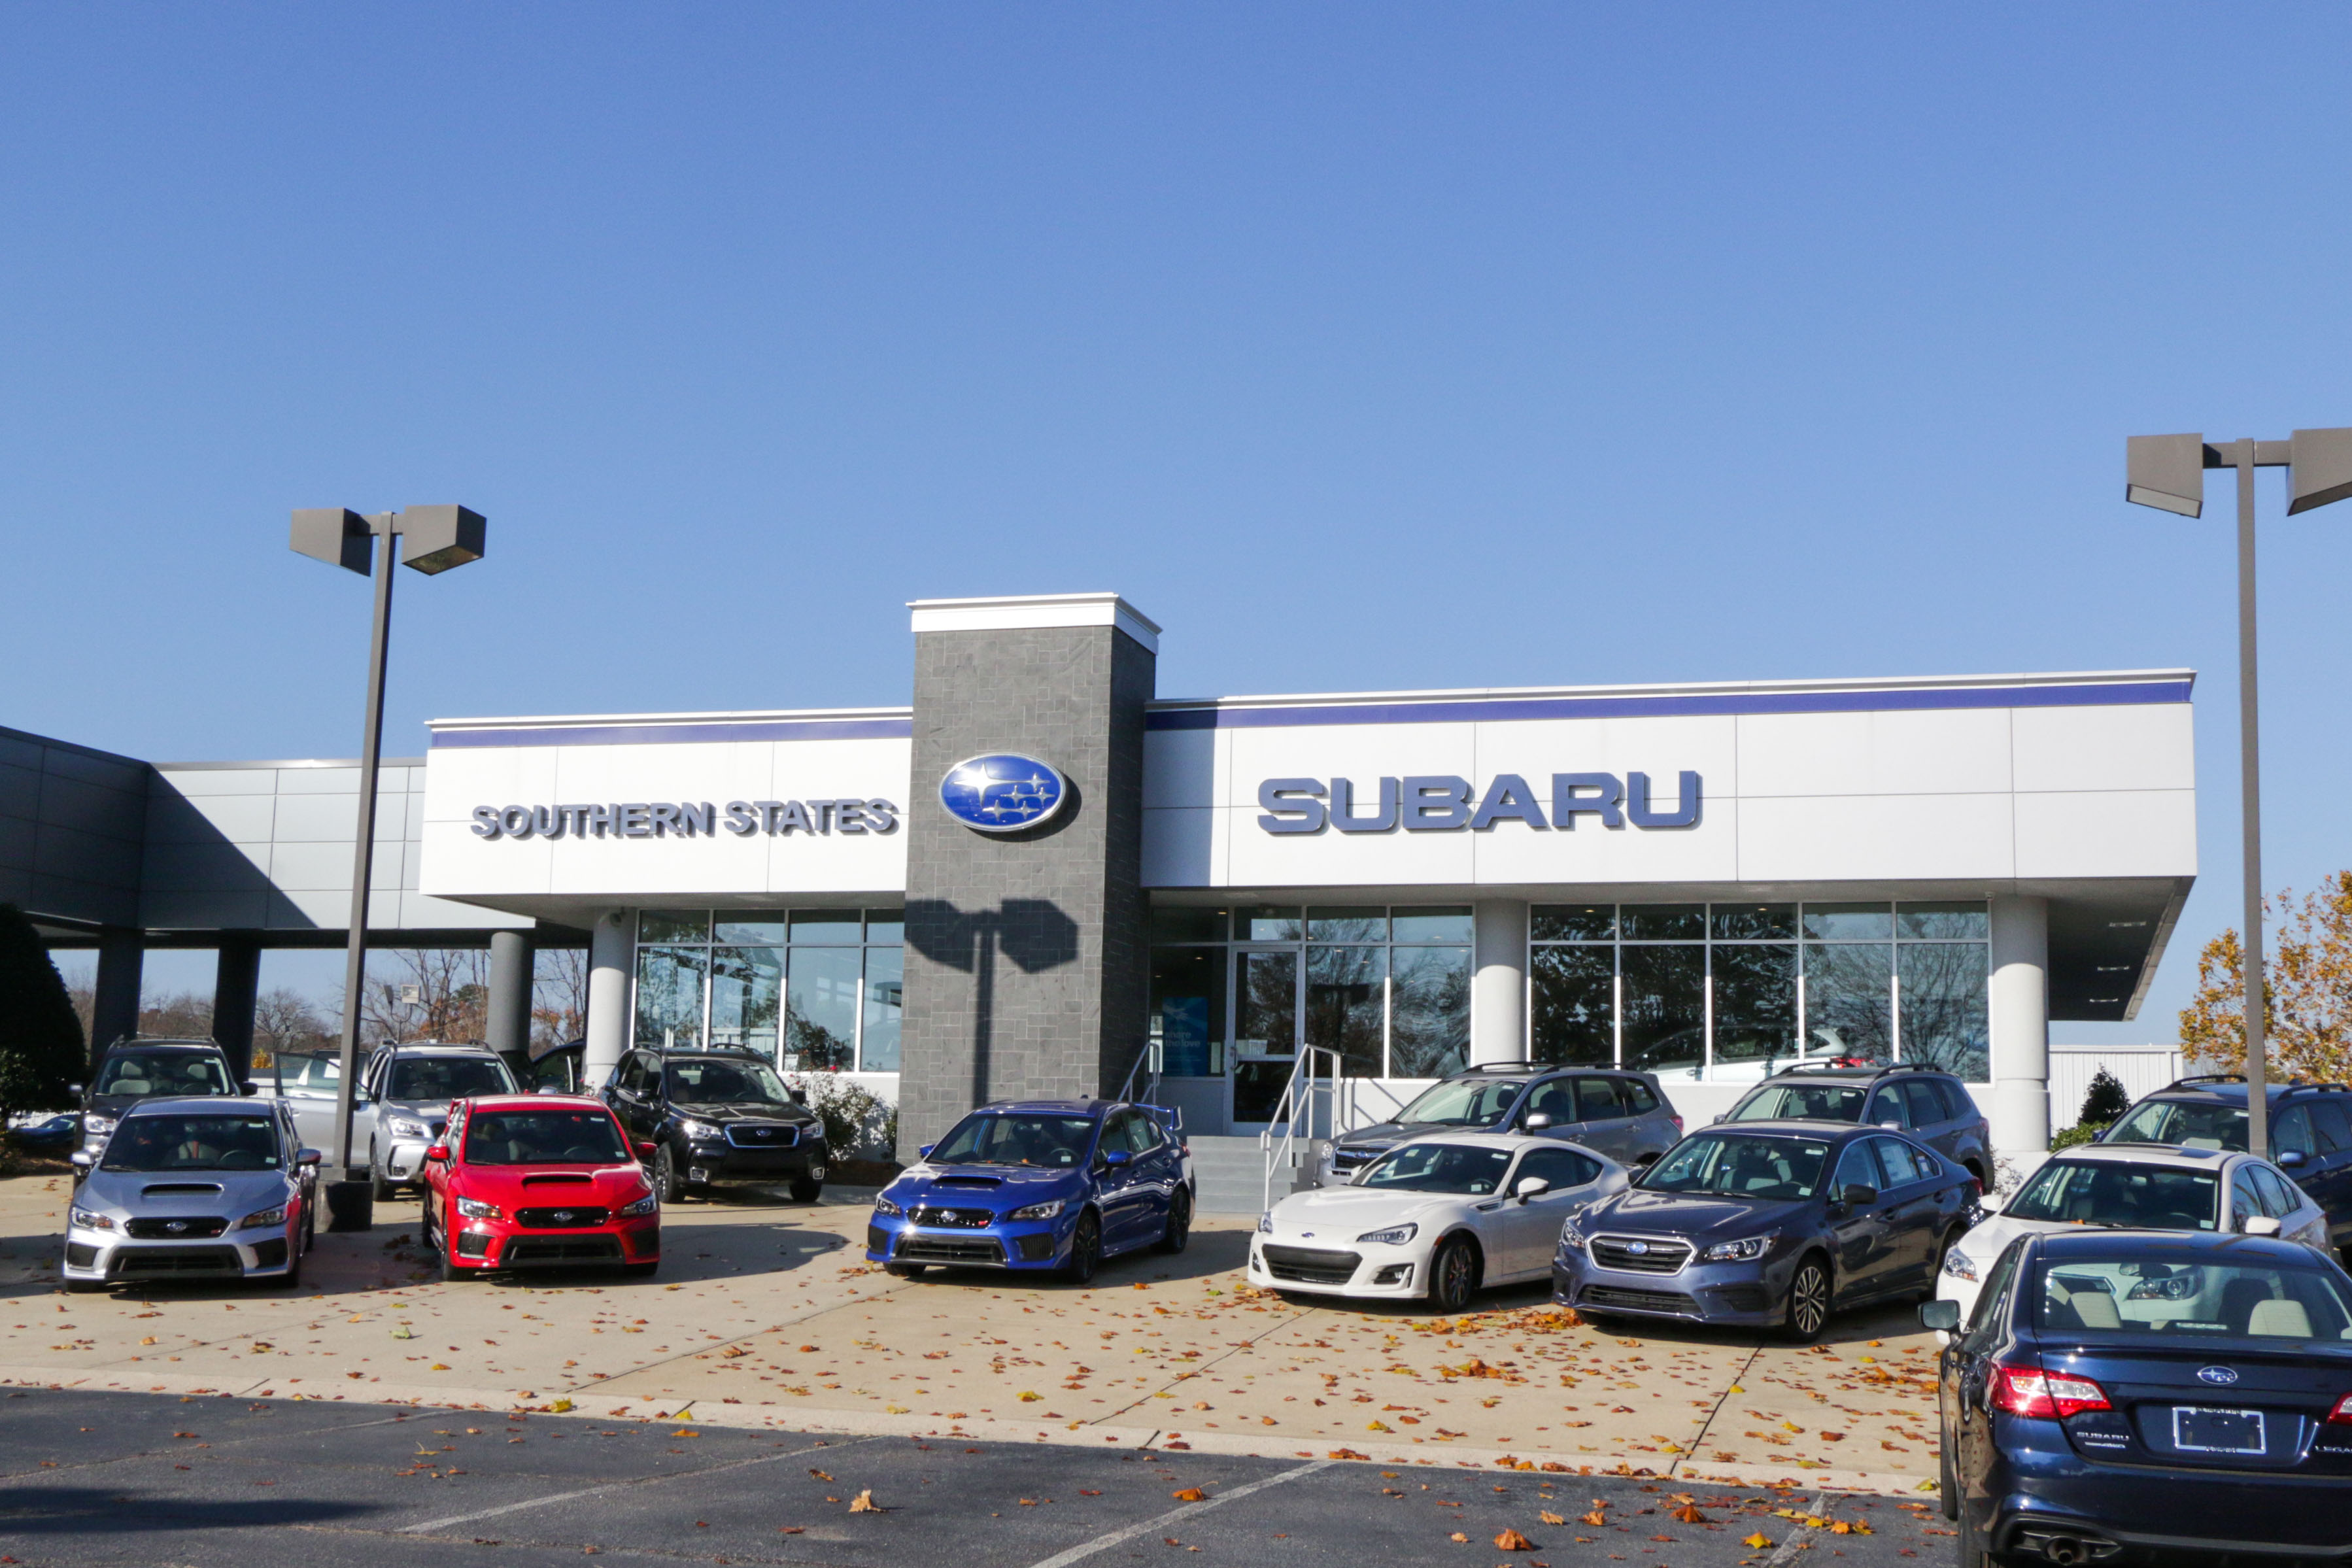 new subaru used car dealer in raleigh nc southern states subaru. Black Bedroom Furniture Sets. Home Design Ideas